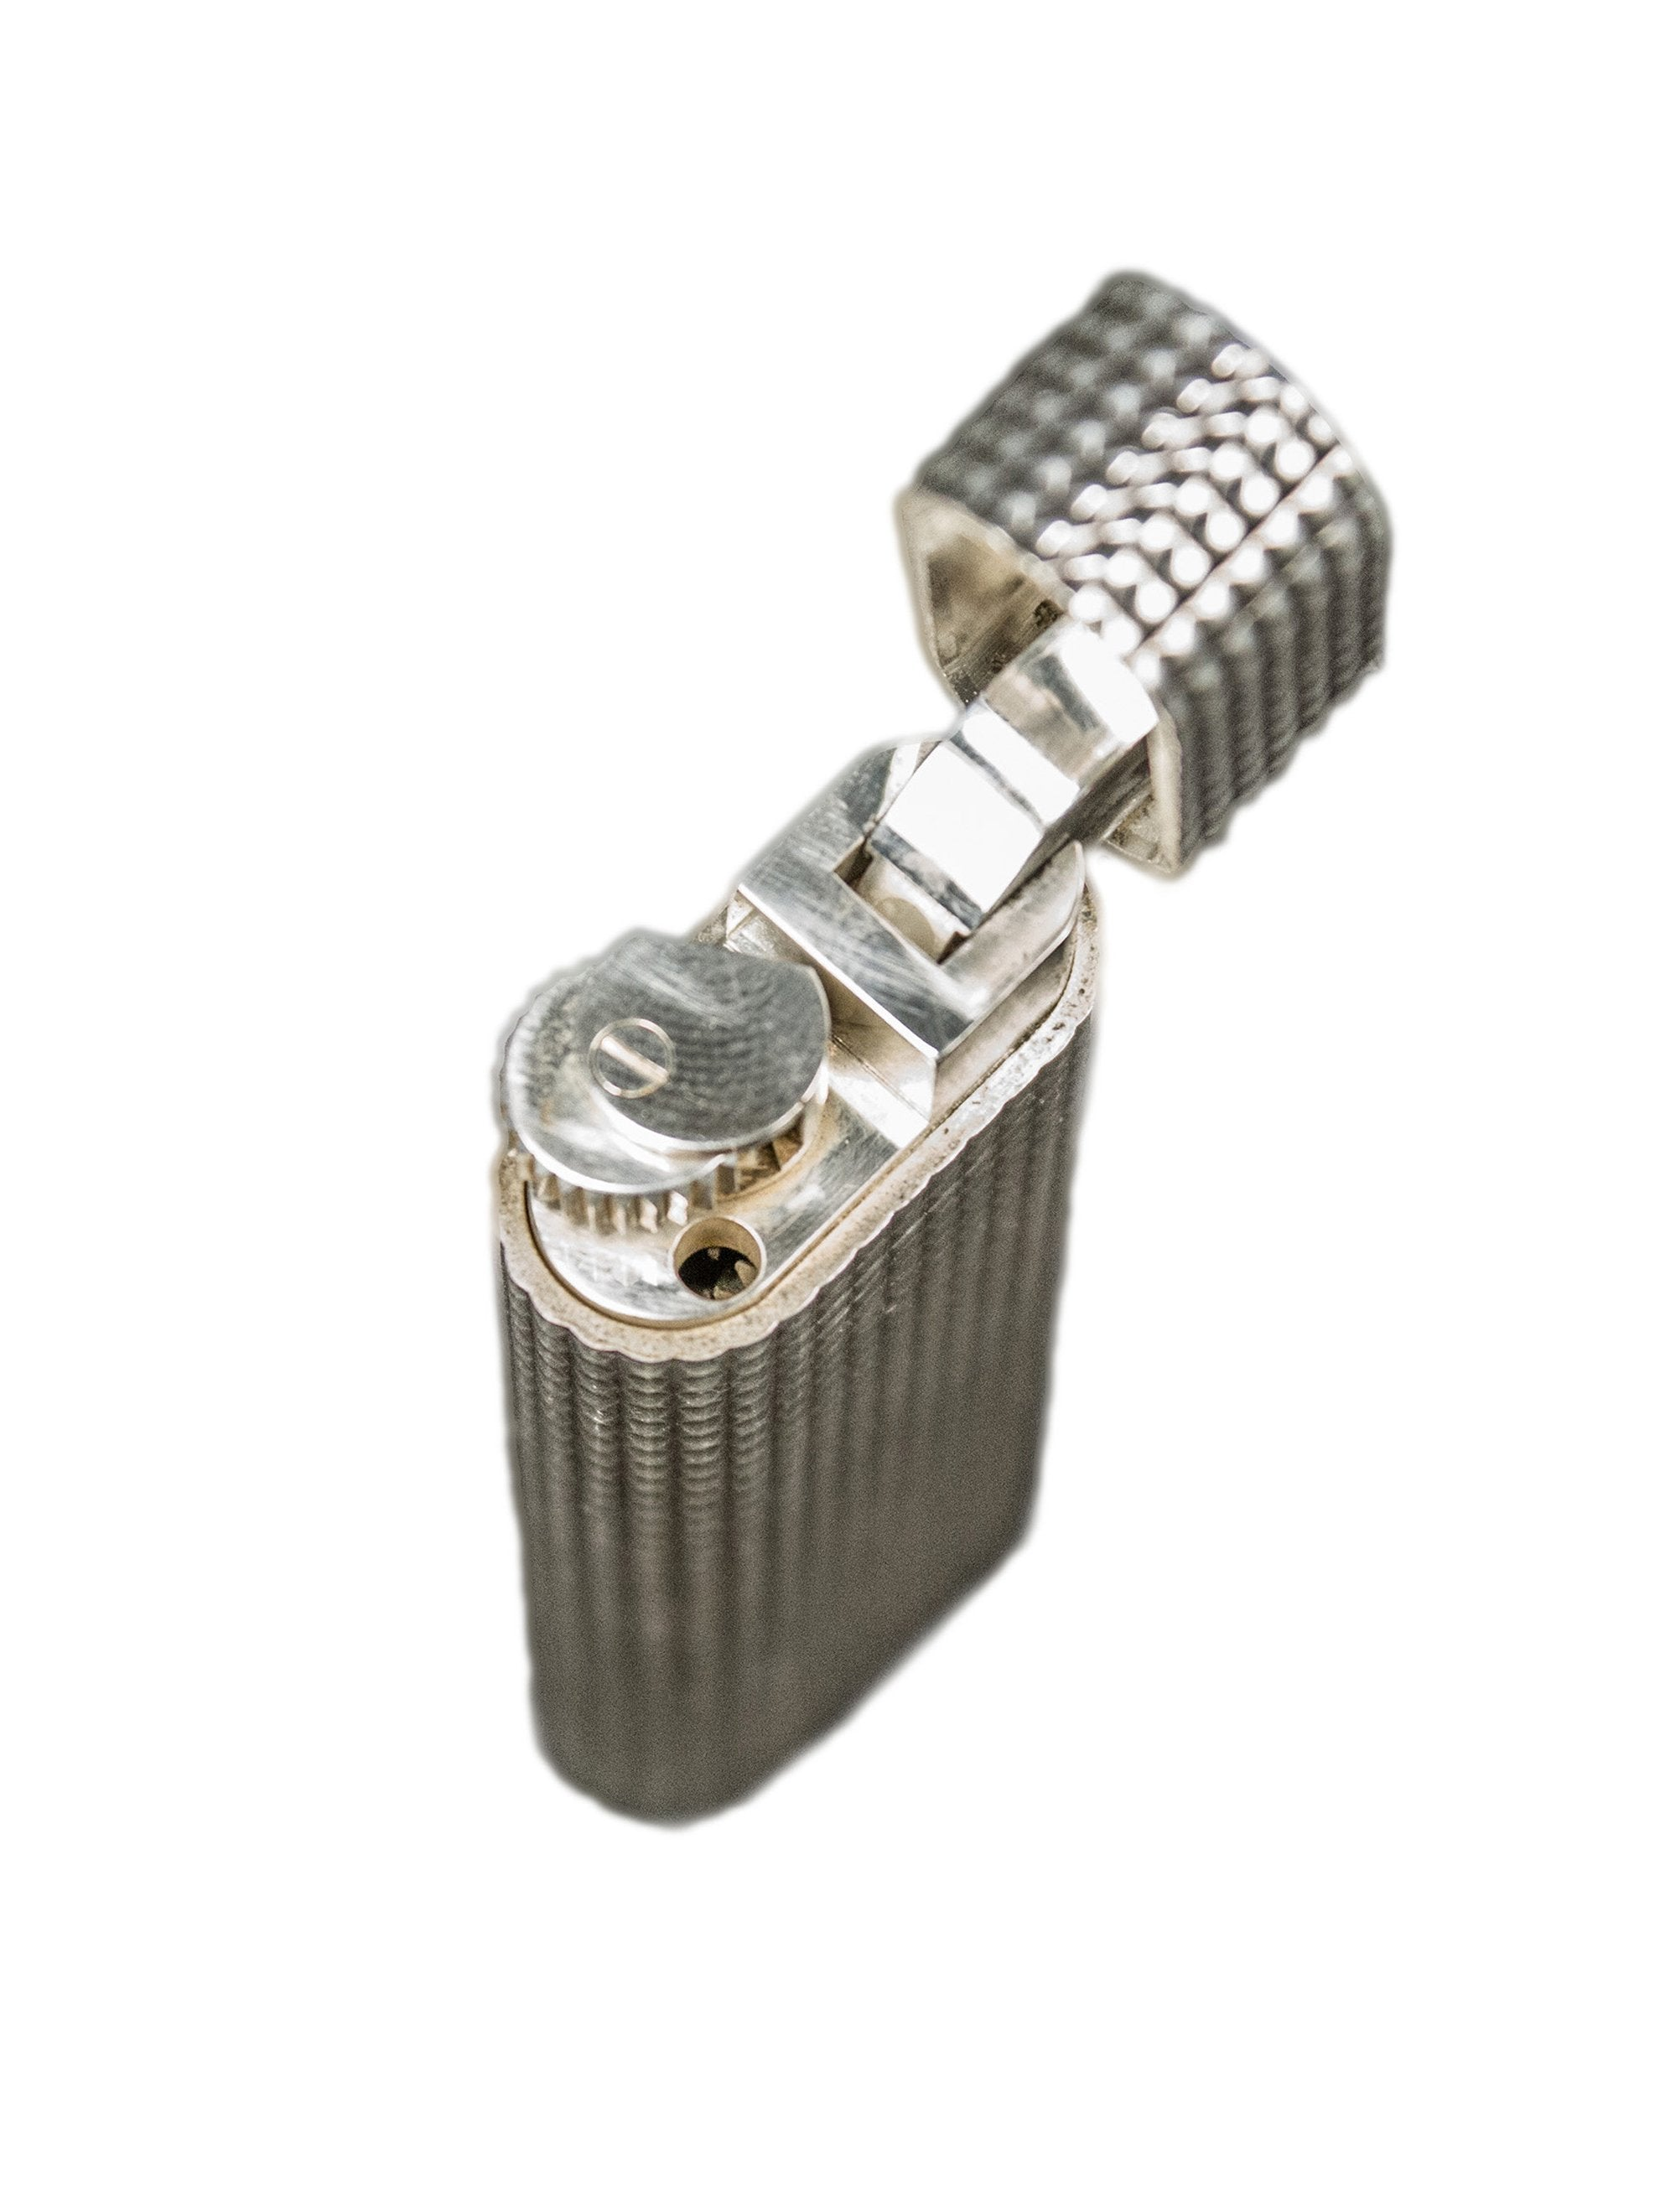 Diamond Cut Rare Vintage Diamond Cut Swiss Made Cartier of Paris Gas Lighter 3